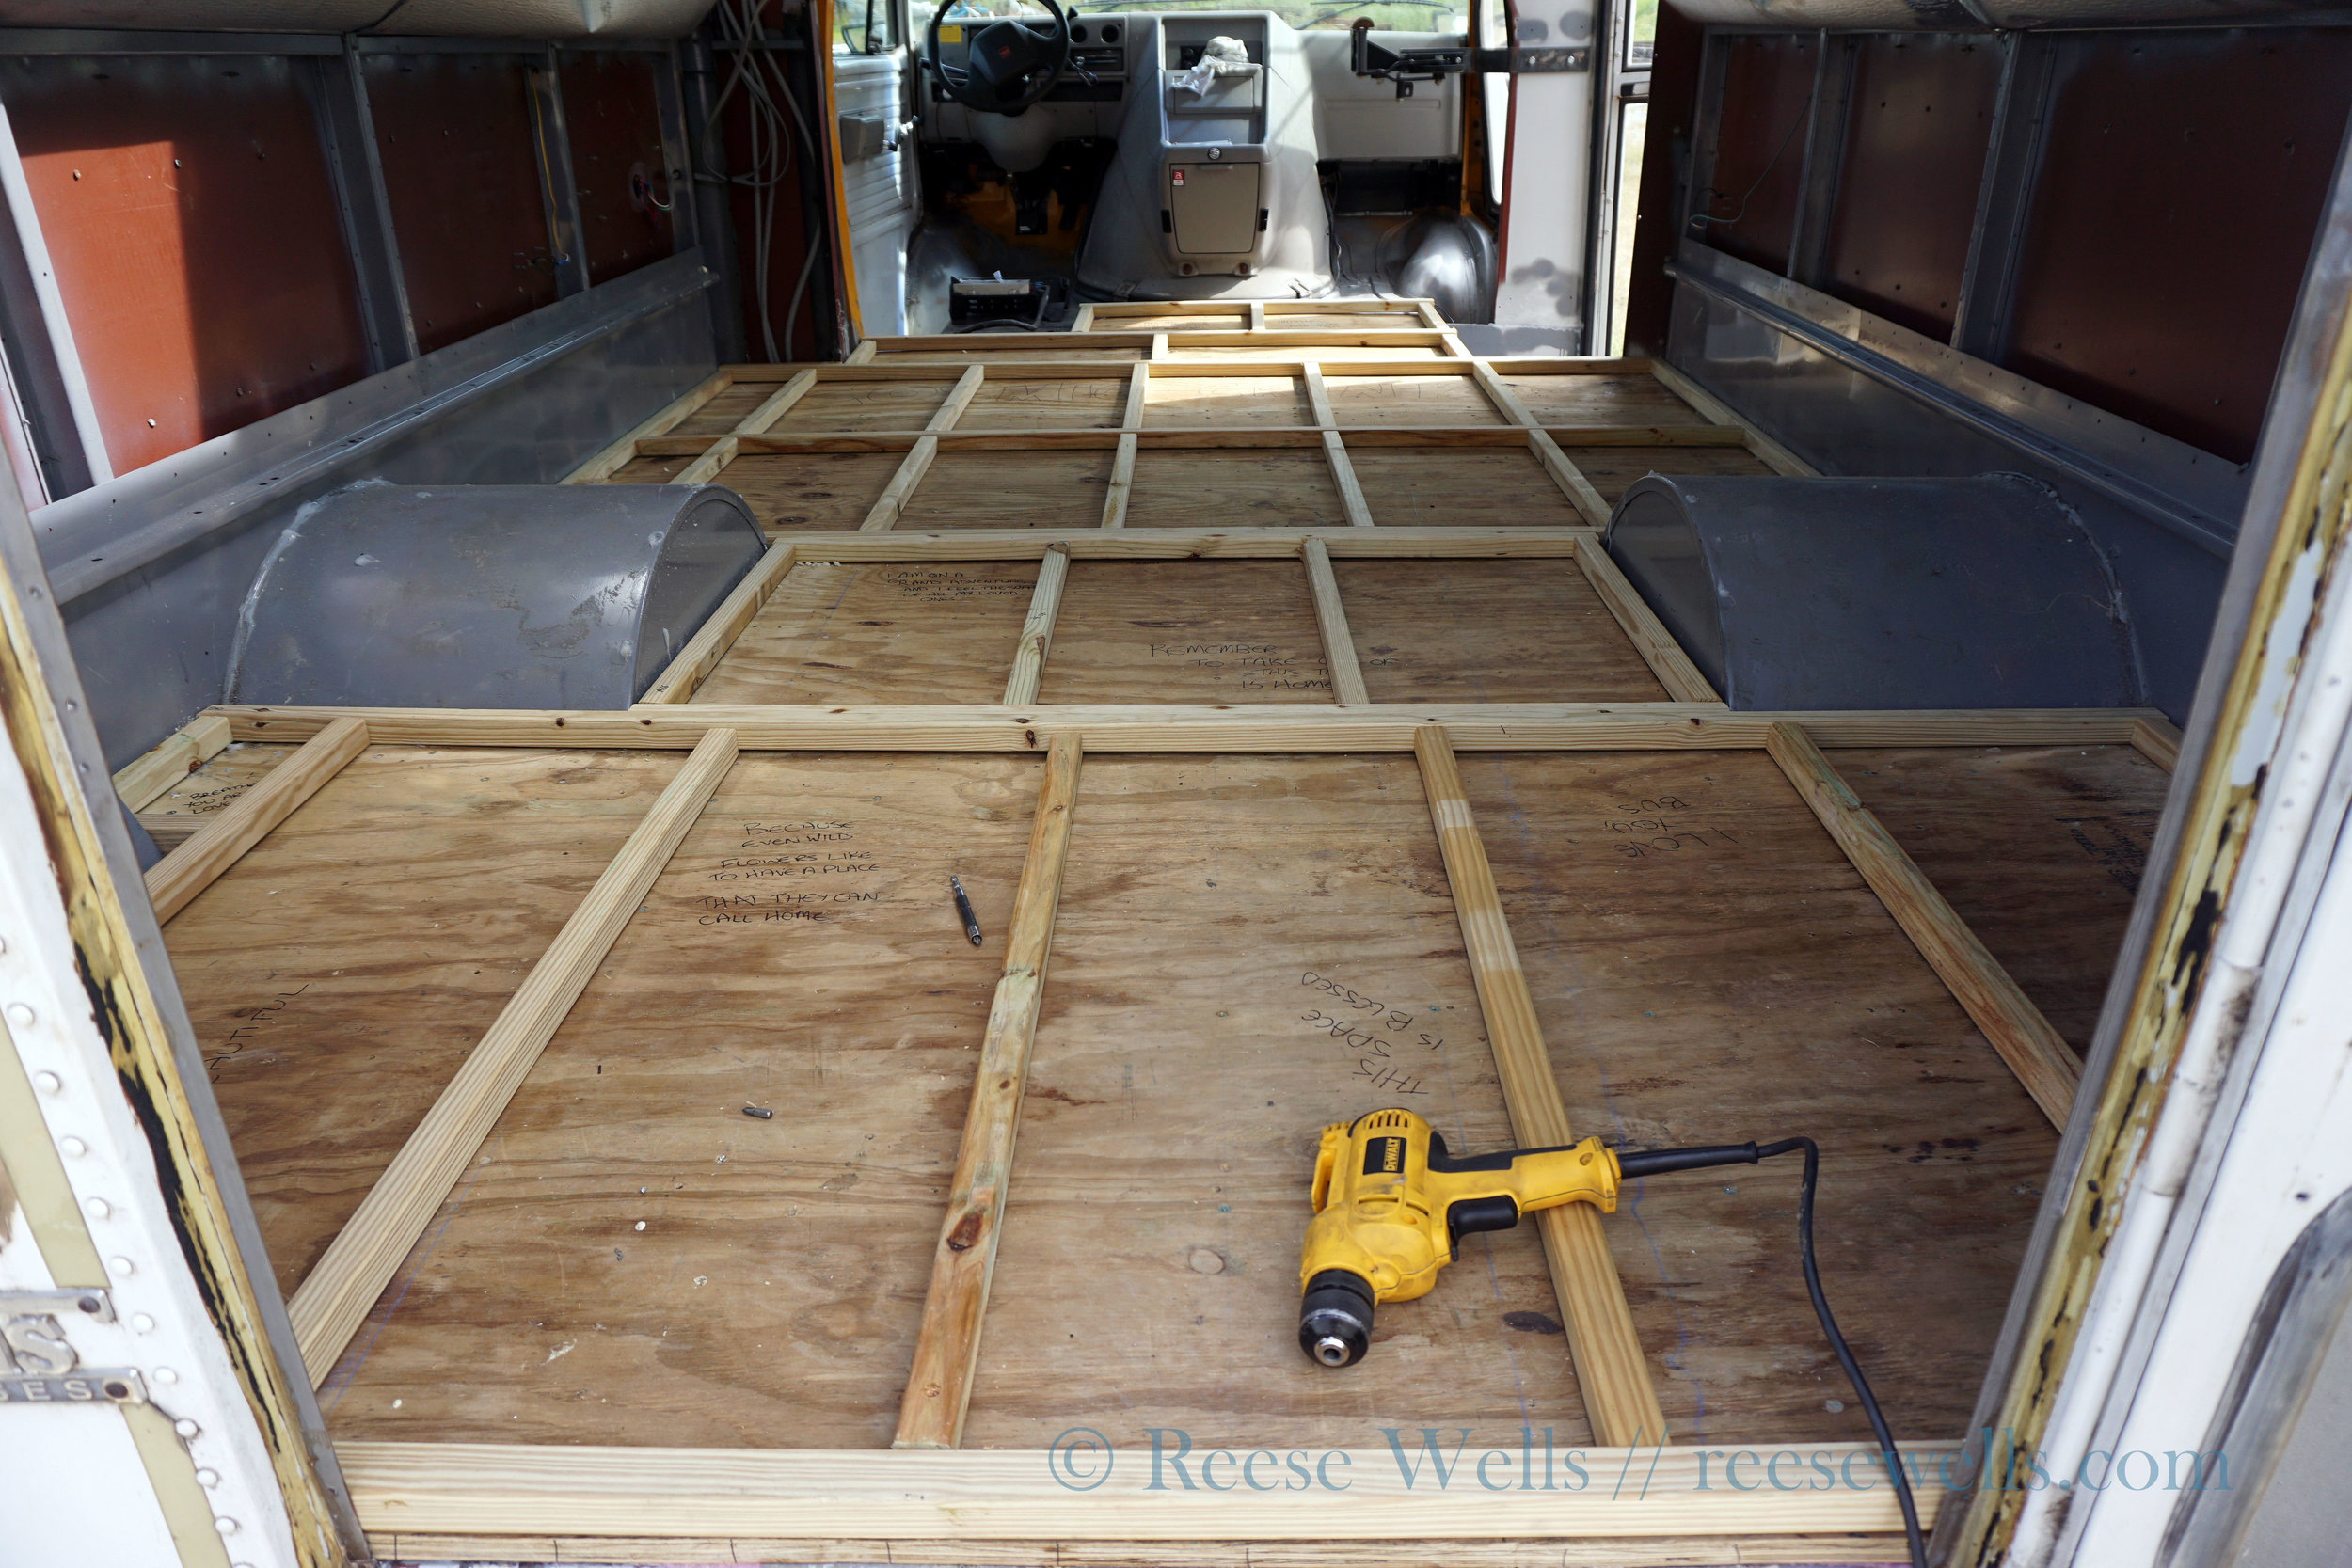 Framing out the insulation for the floor.